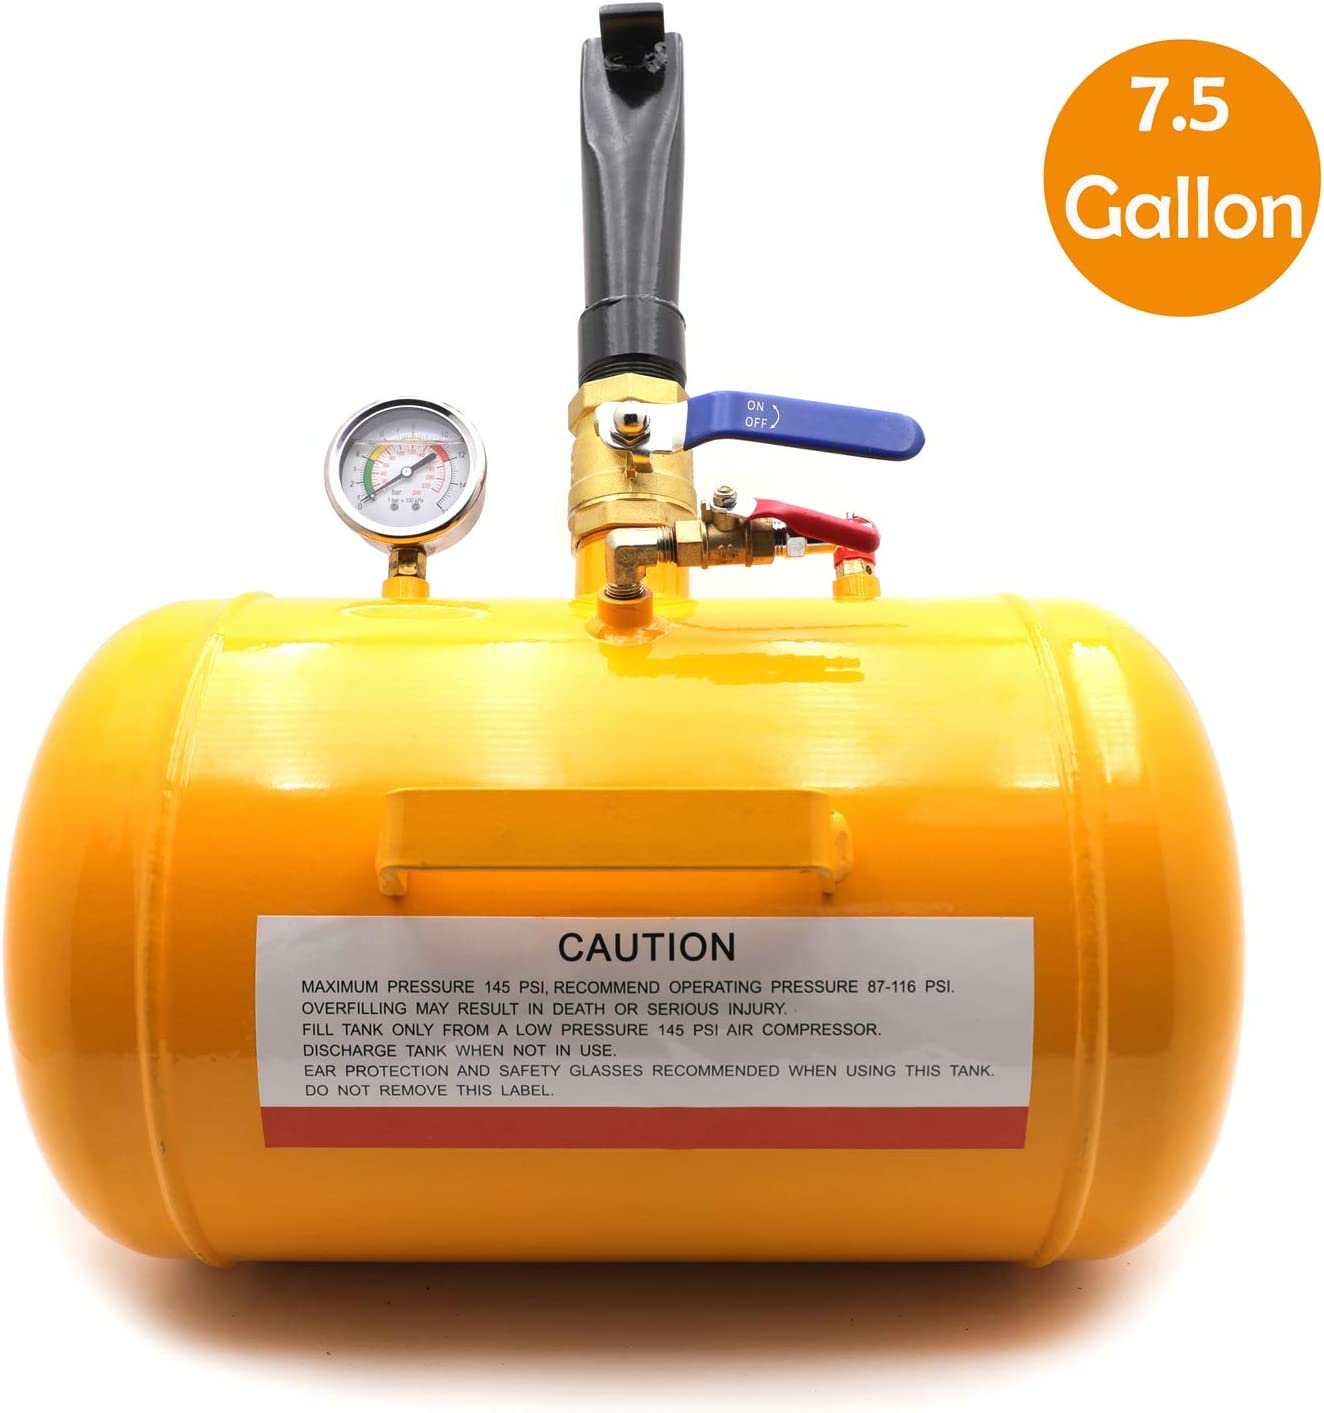 XKMT- 7.5 Gallon Vehicle Air Tire Blaster Our shop OFFers New Free Shipping the best service Seati Seater Tool Bead